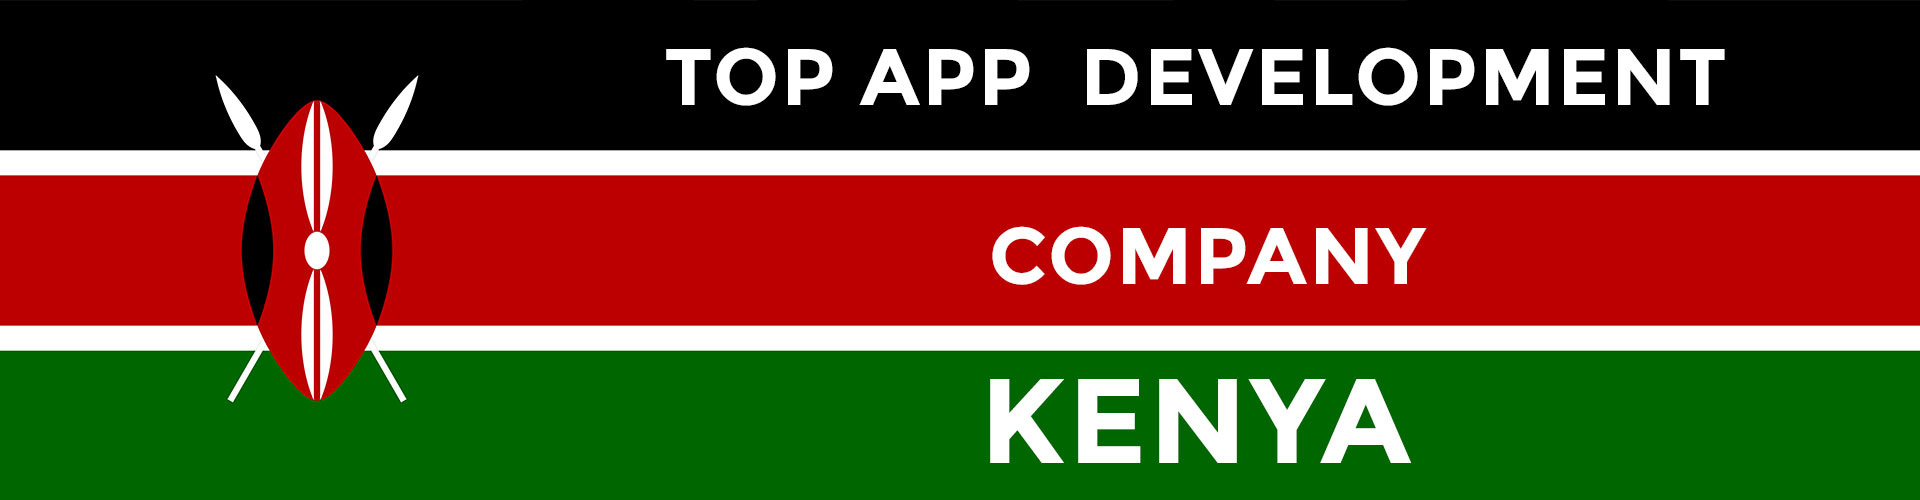 top app development companies kenya